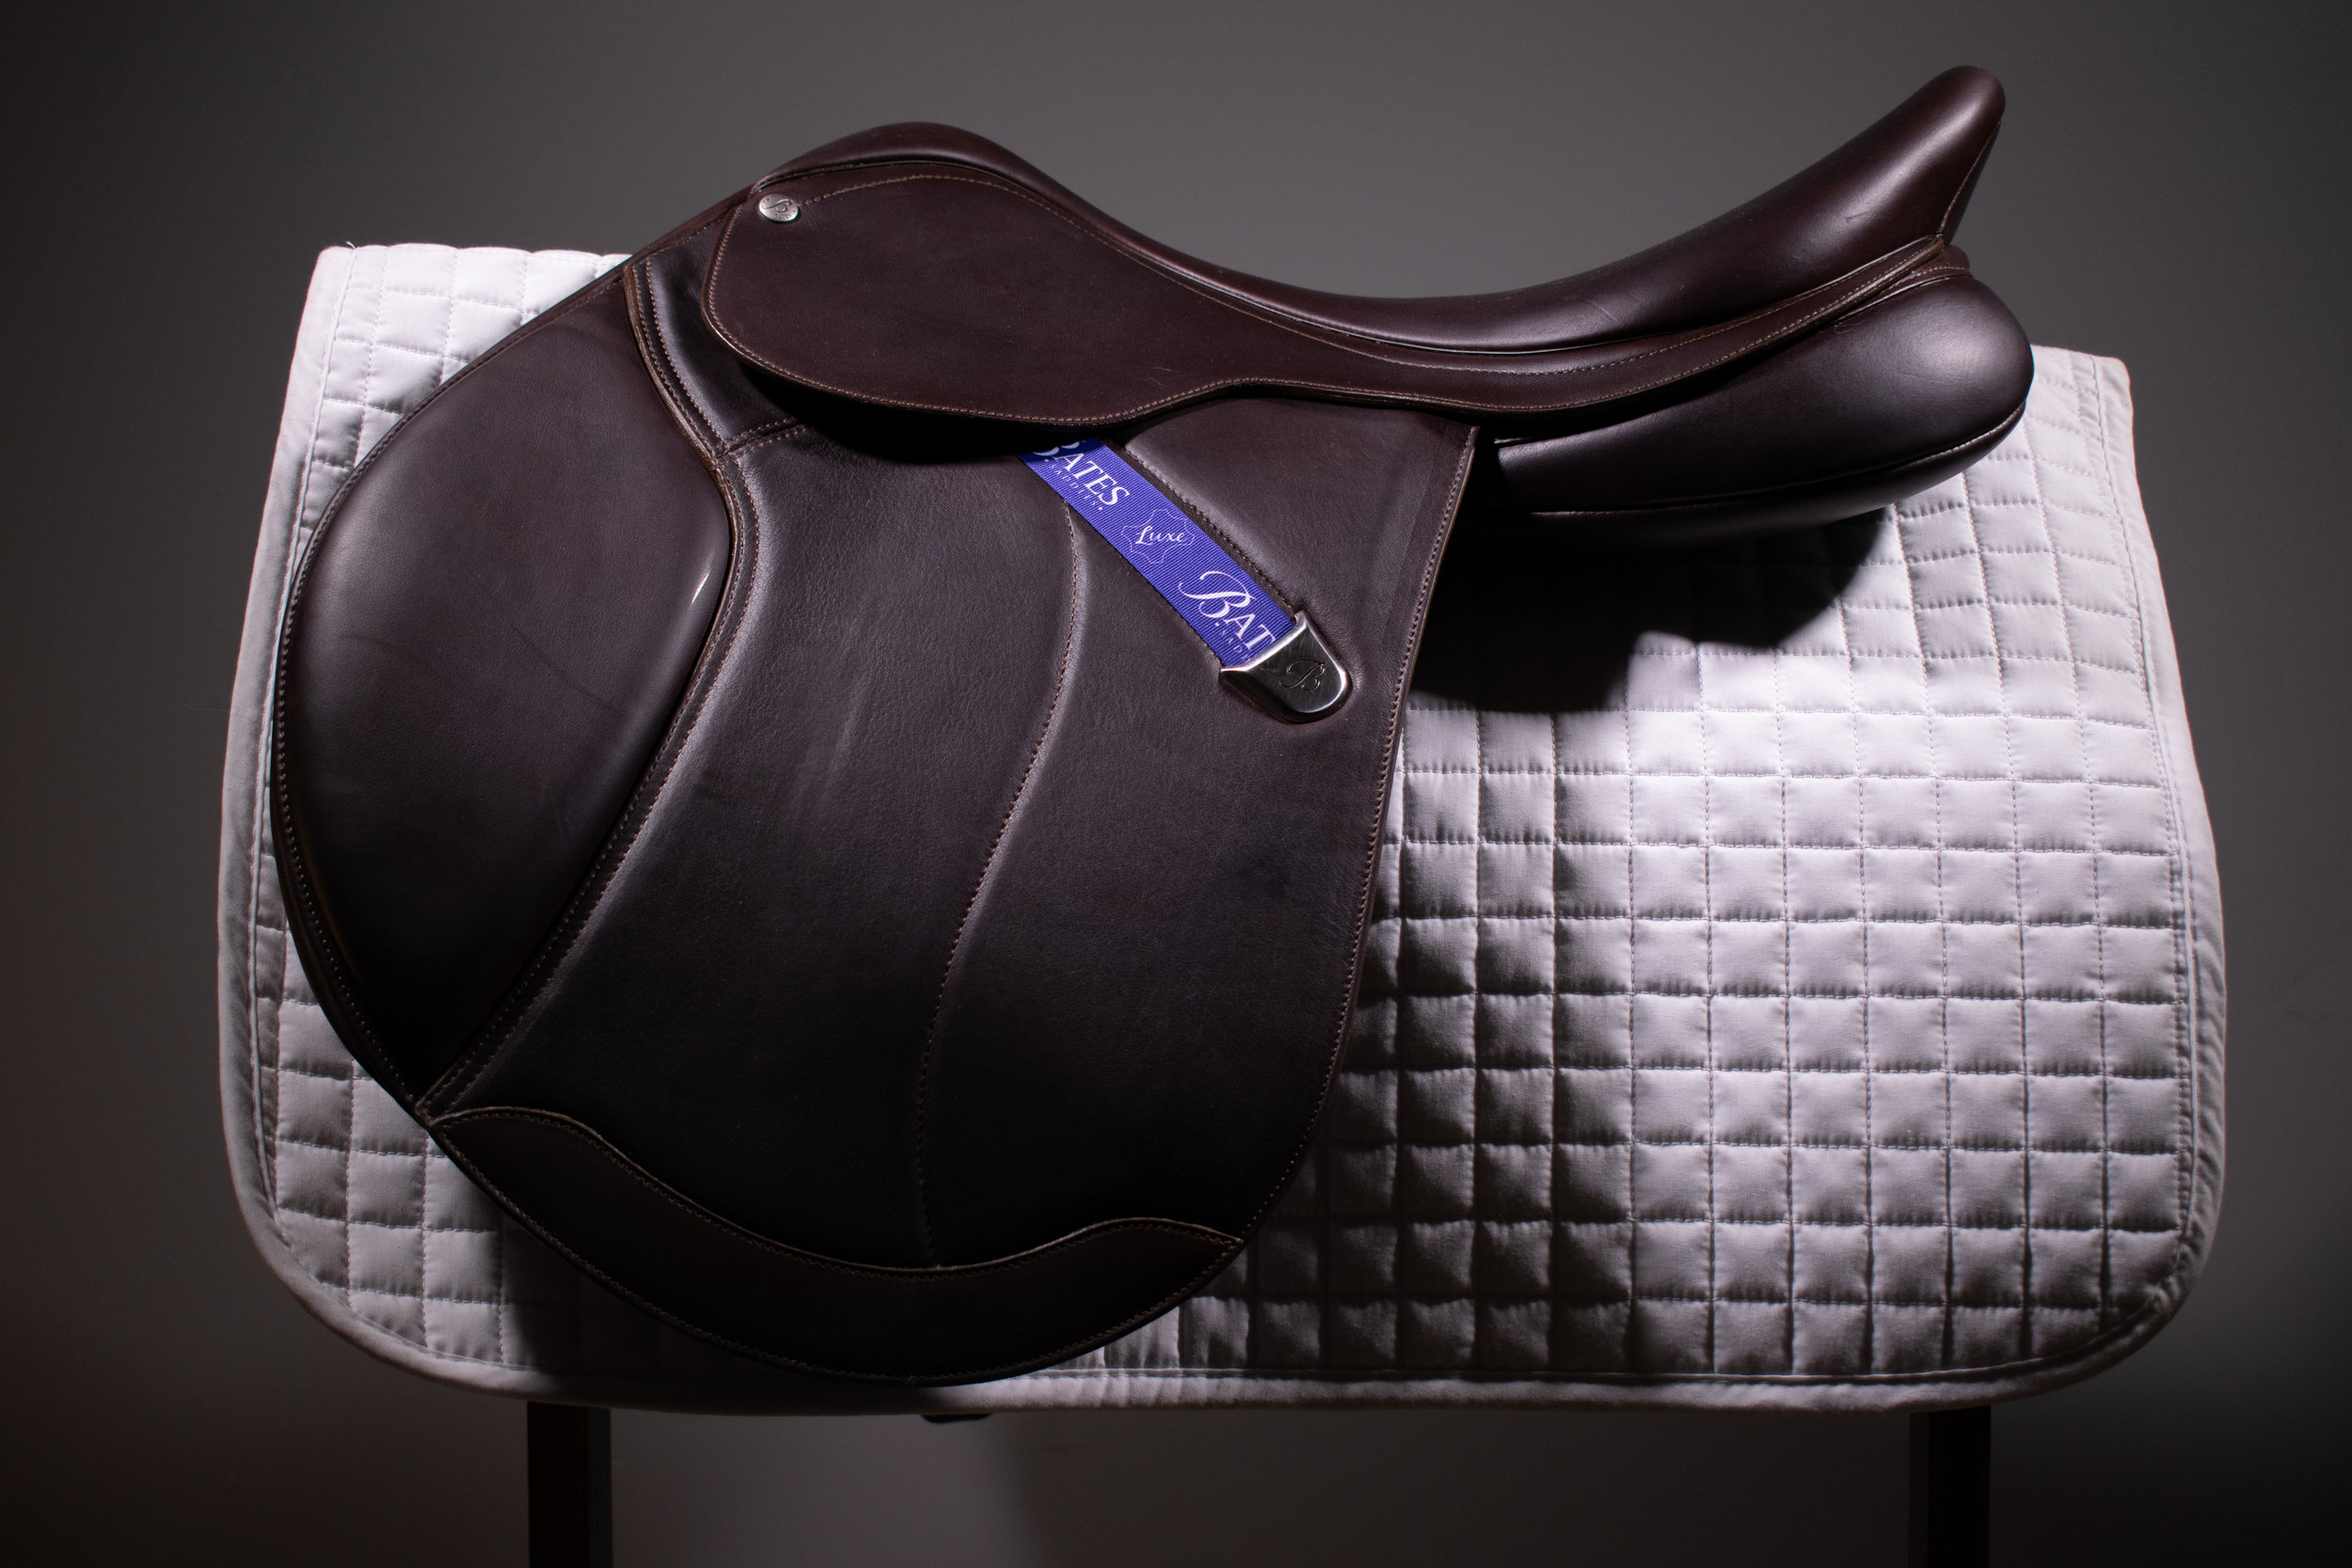 My new Bates Caprilli Close Contact + saddle in the Luxe Leather